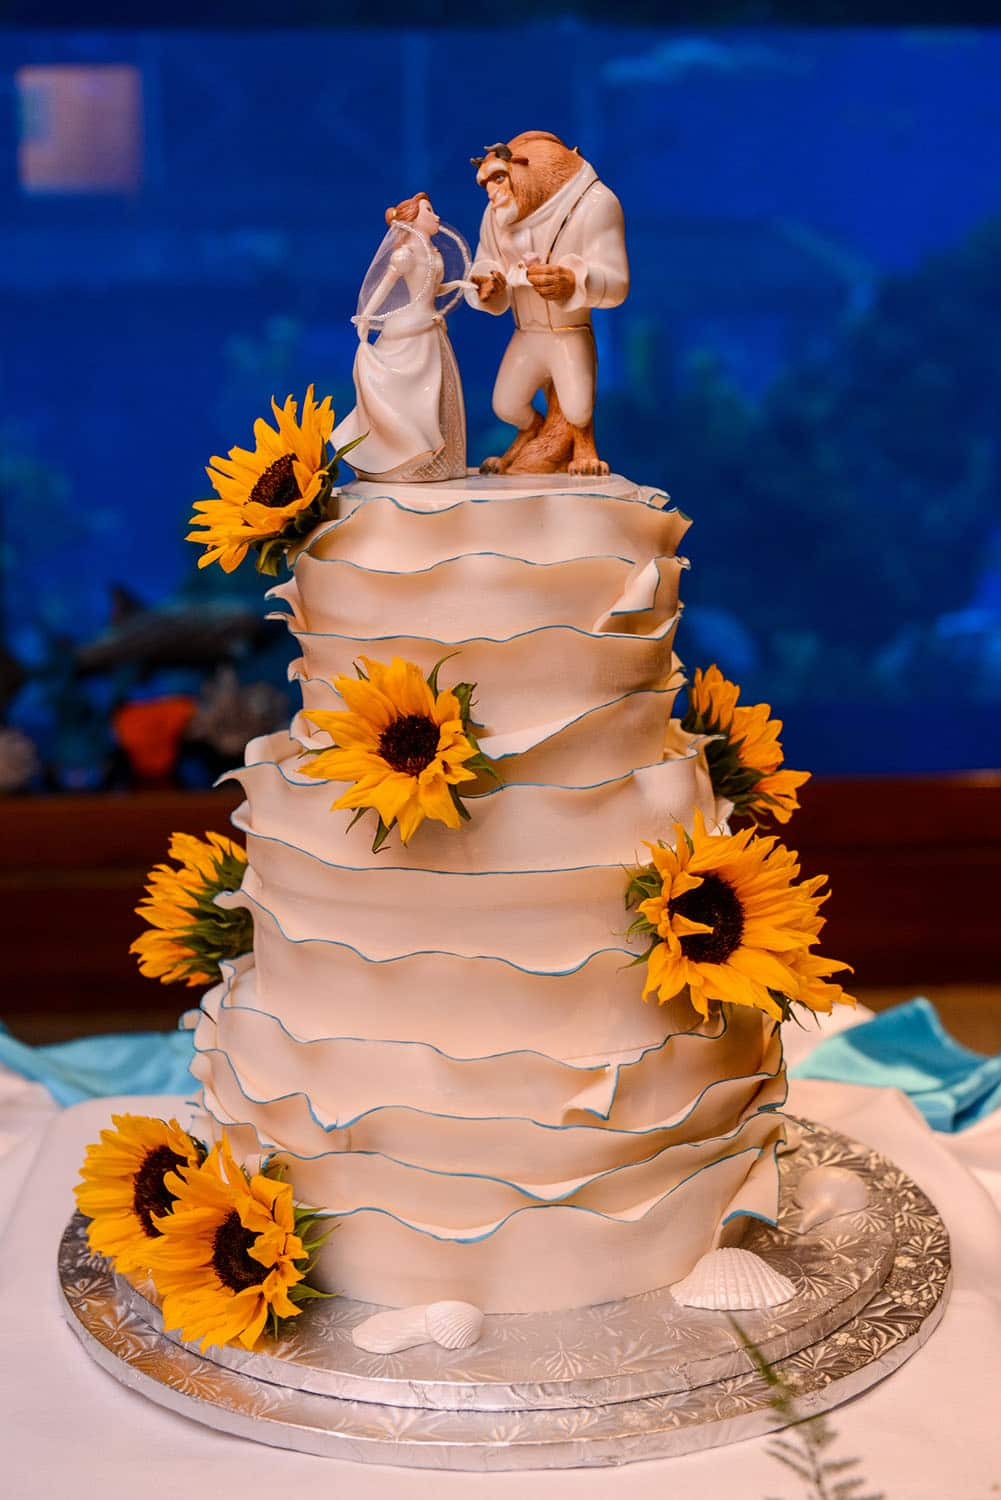 Topped With A Favorite Disney Belle And Beast Adorned In Their Own Wedding Attire We Invite You To Be Our Guest Enjoy This Delectable Dessert